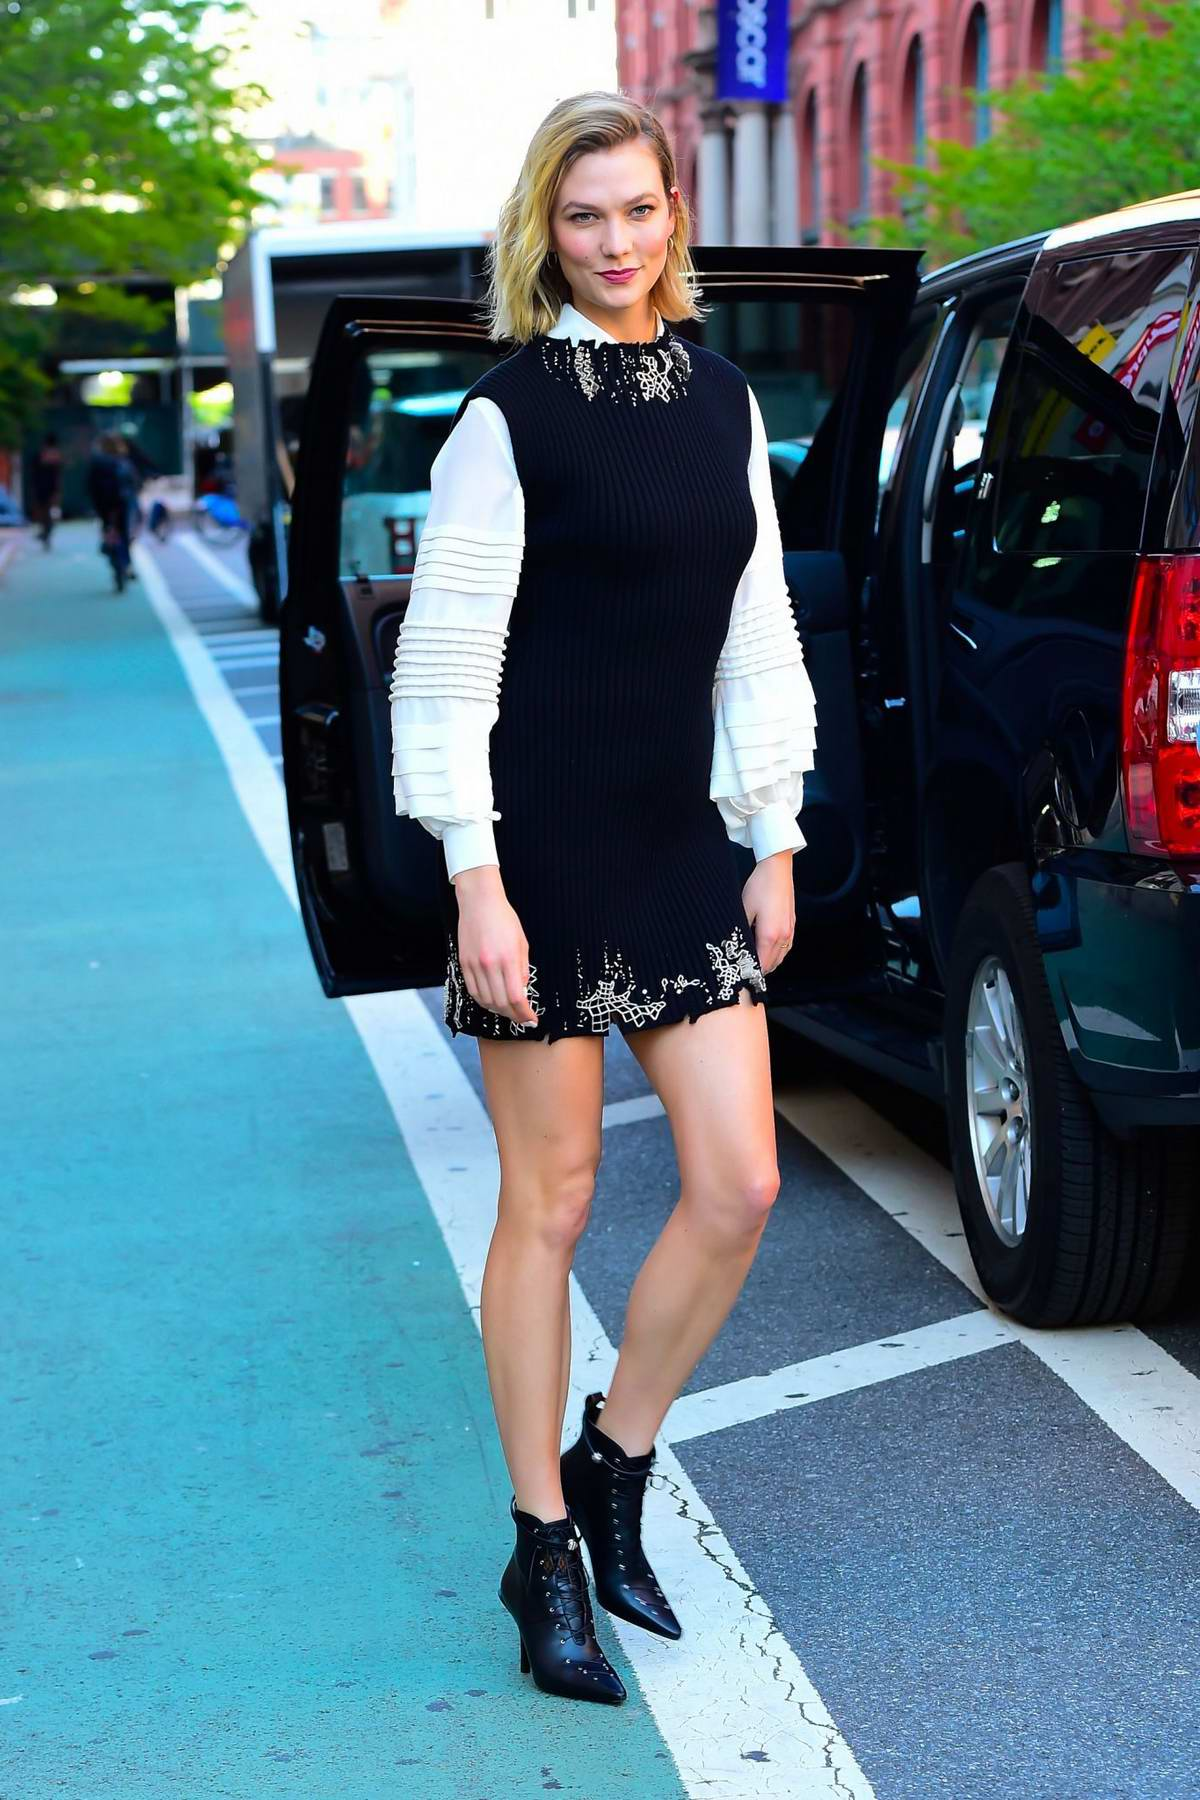 Karlie Kloss keeps it chic with black and white as she steps out in SoHo, New York City